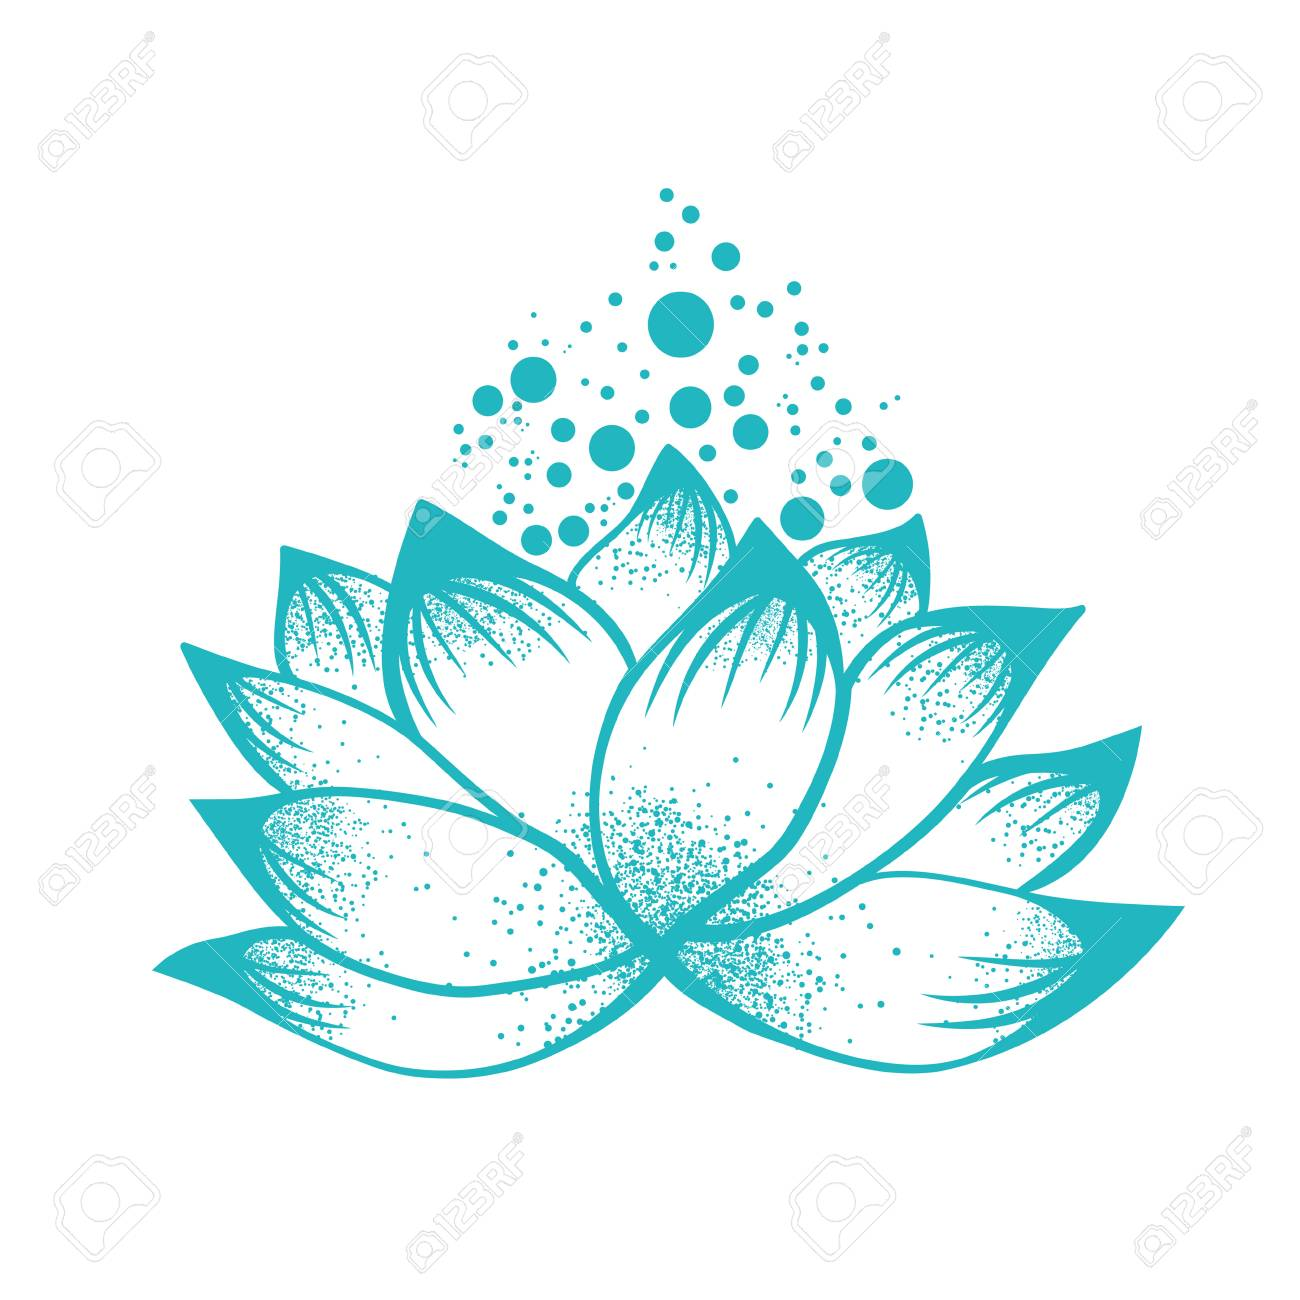 Illustration of abstract design of lilly lotus flower royalty free illustration of abstract design of lilly lotus flower stock vector 76737501 mightylinksfo